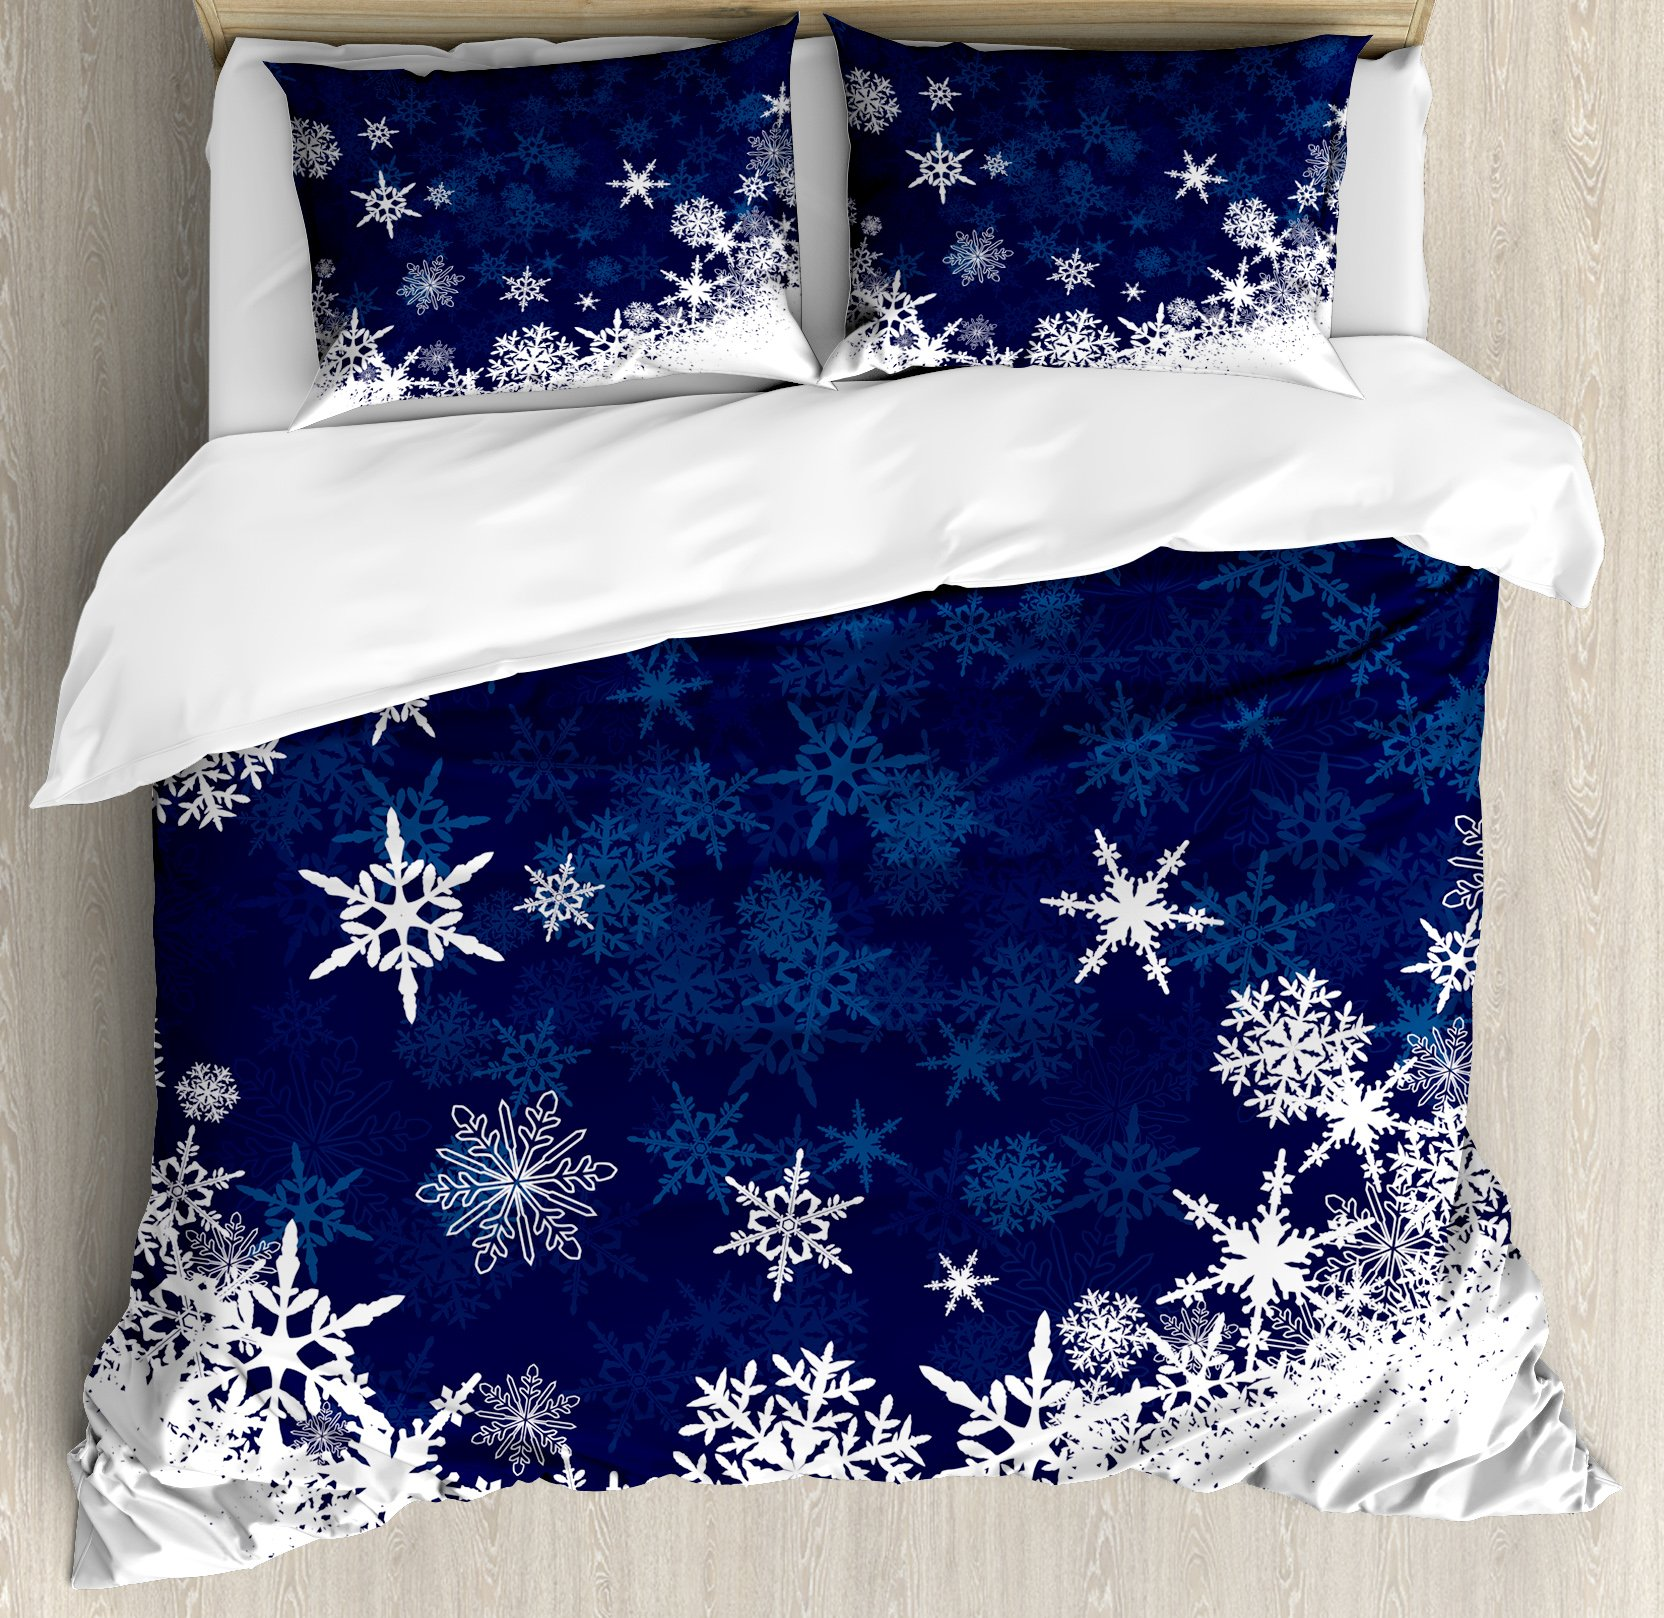 Snowflake Queen Size Duvet Cover Set by Lunarable, Winter Theme Christmas Illustration Cold Weather Season Inspired Celebration, Decorative 3 Piece Bedding Set with 2 Pillow Shams, Navy Blue White